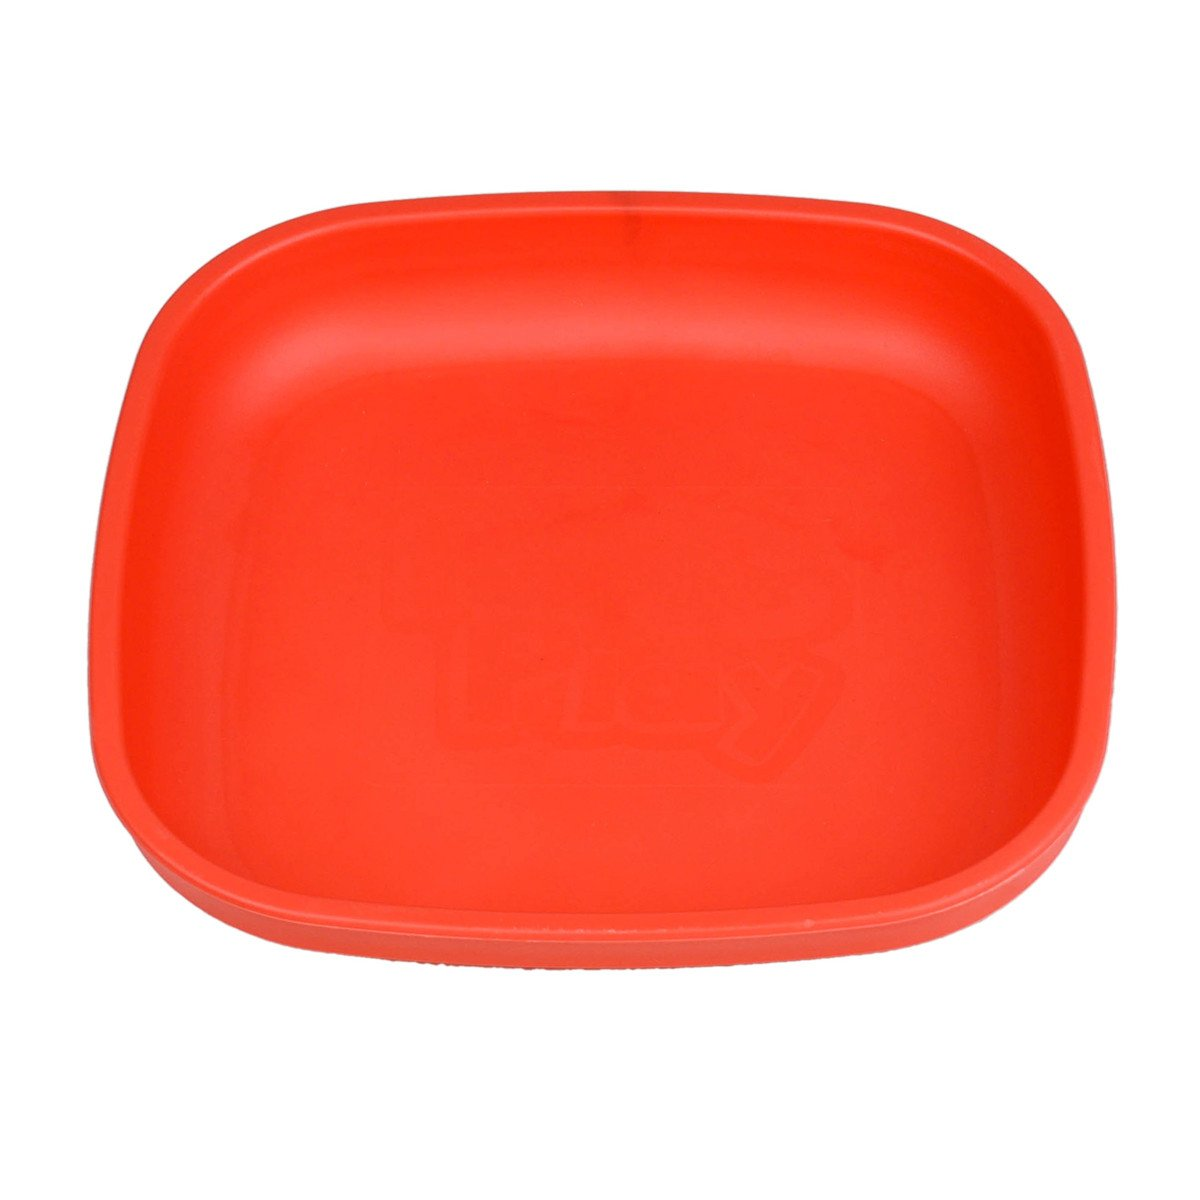 Replay Plate Replay Dinnerware Red at Little Earth Nest Eco Shop